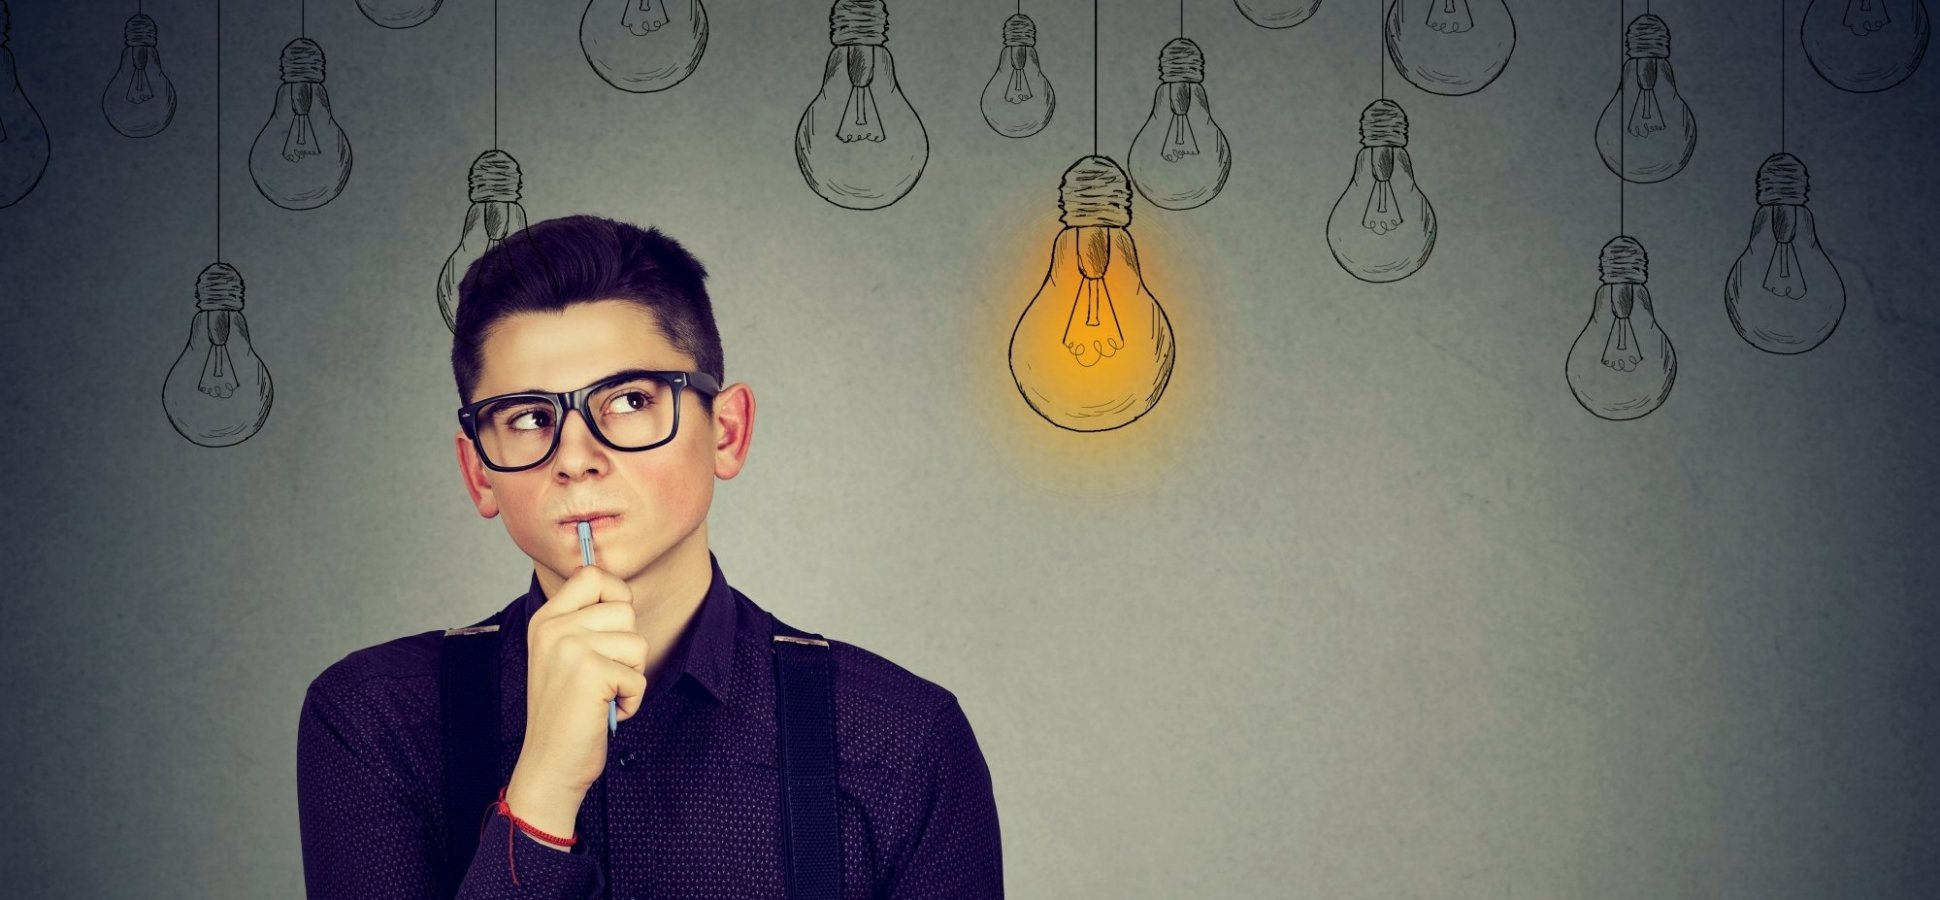 How to Improve Generation Z's Critical Thinking Skills